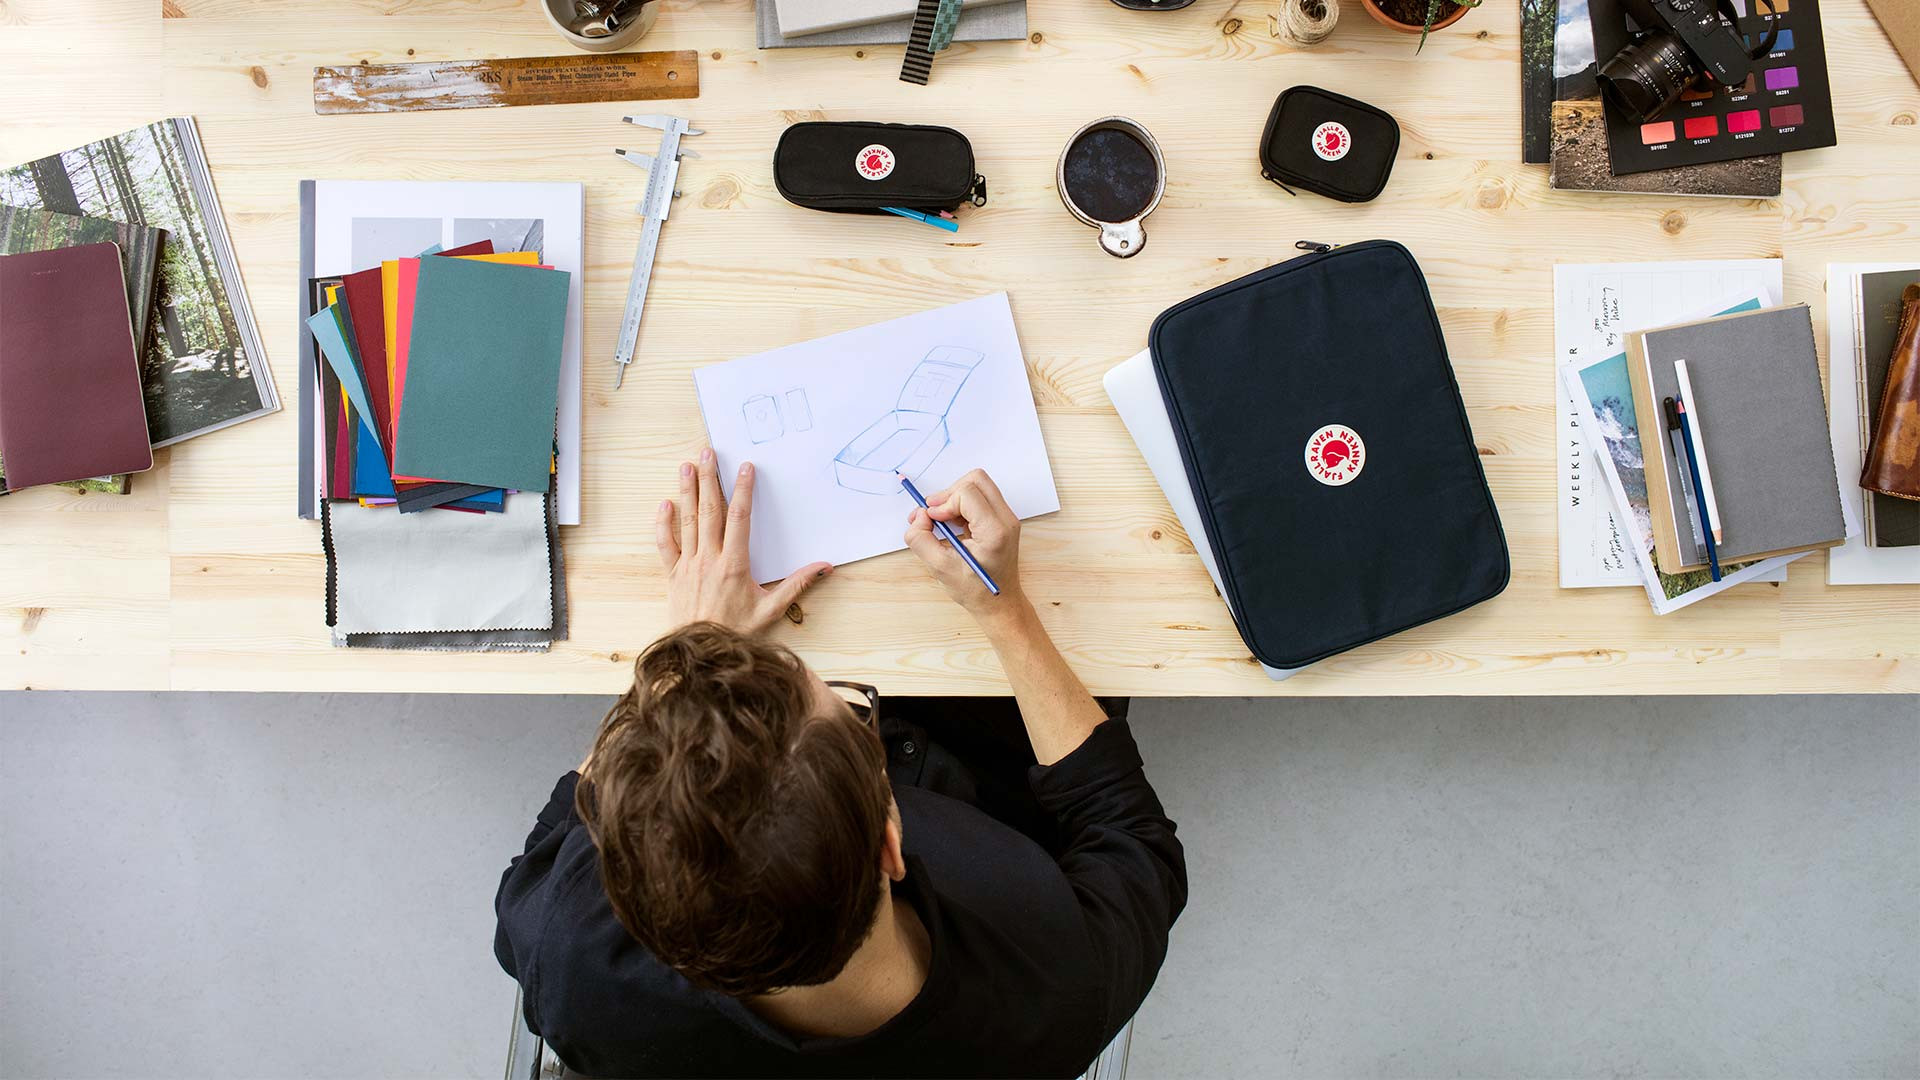 A designer working at a desk with the Fjallraven Kanken Essentials kit